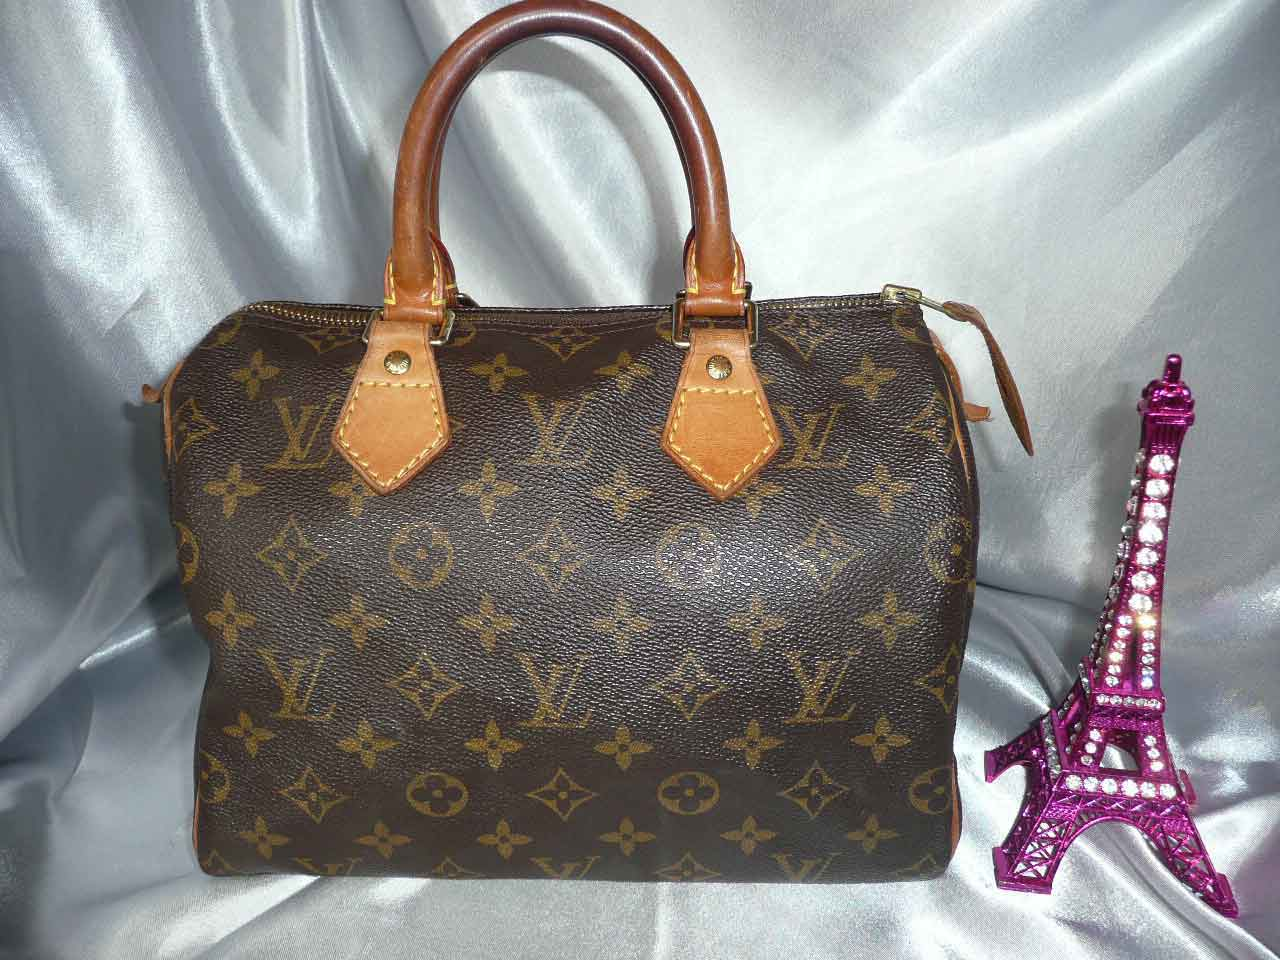 Louis Vuitton Speedy 25 monogramme